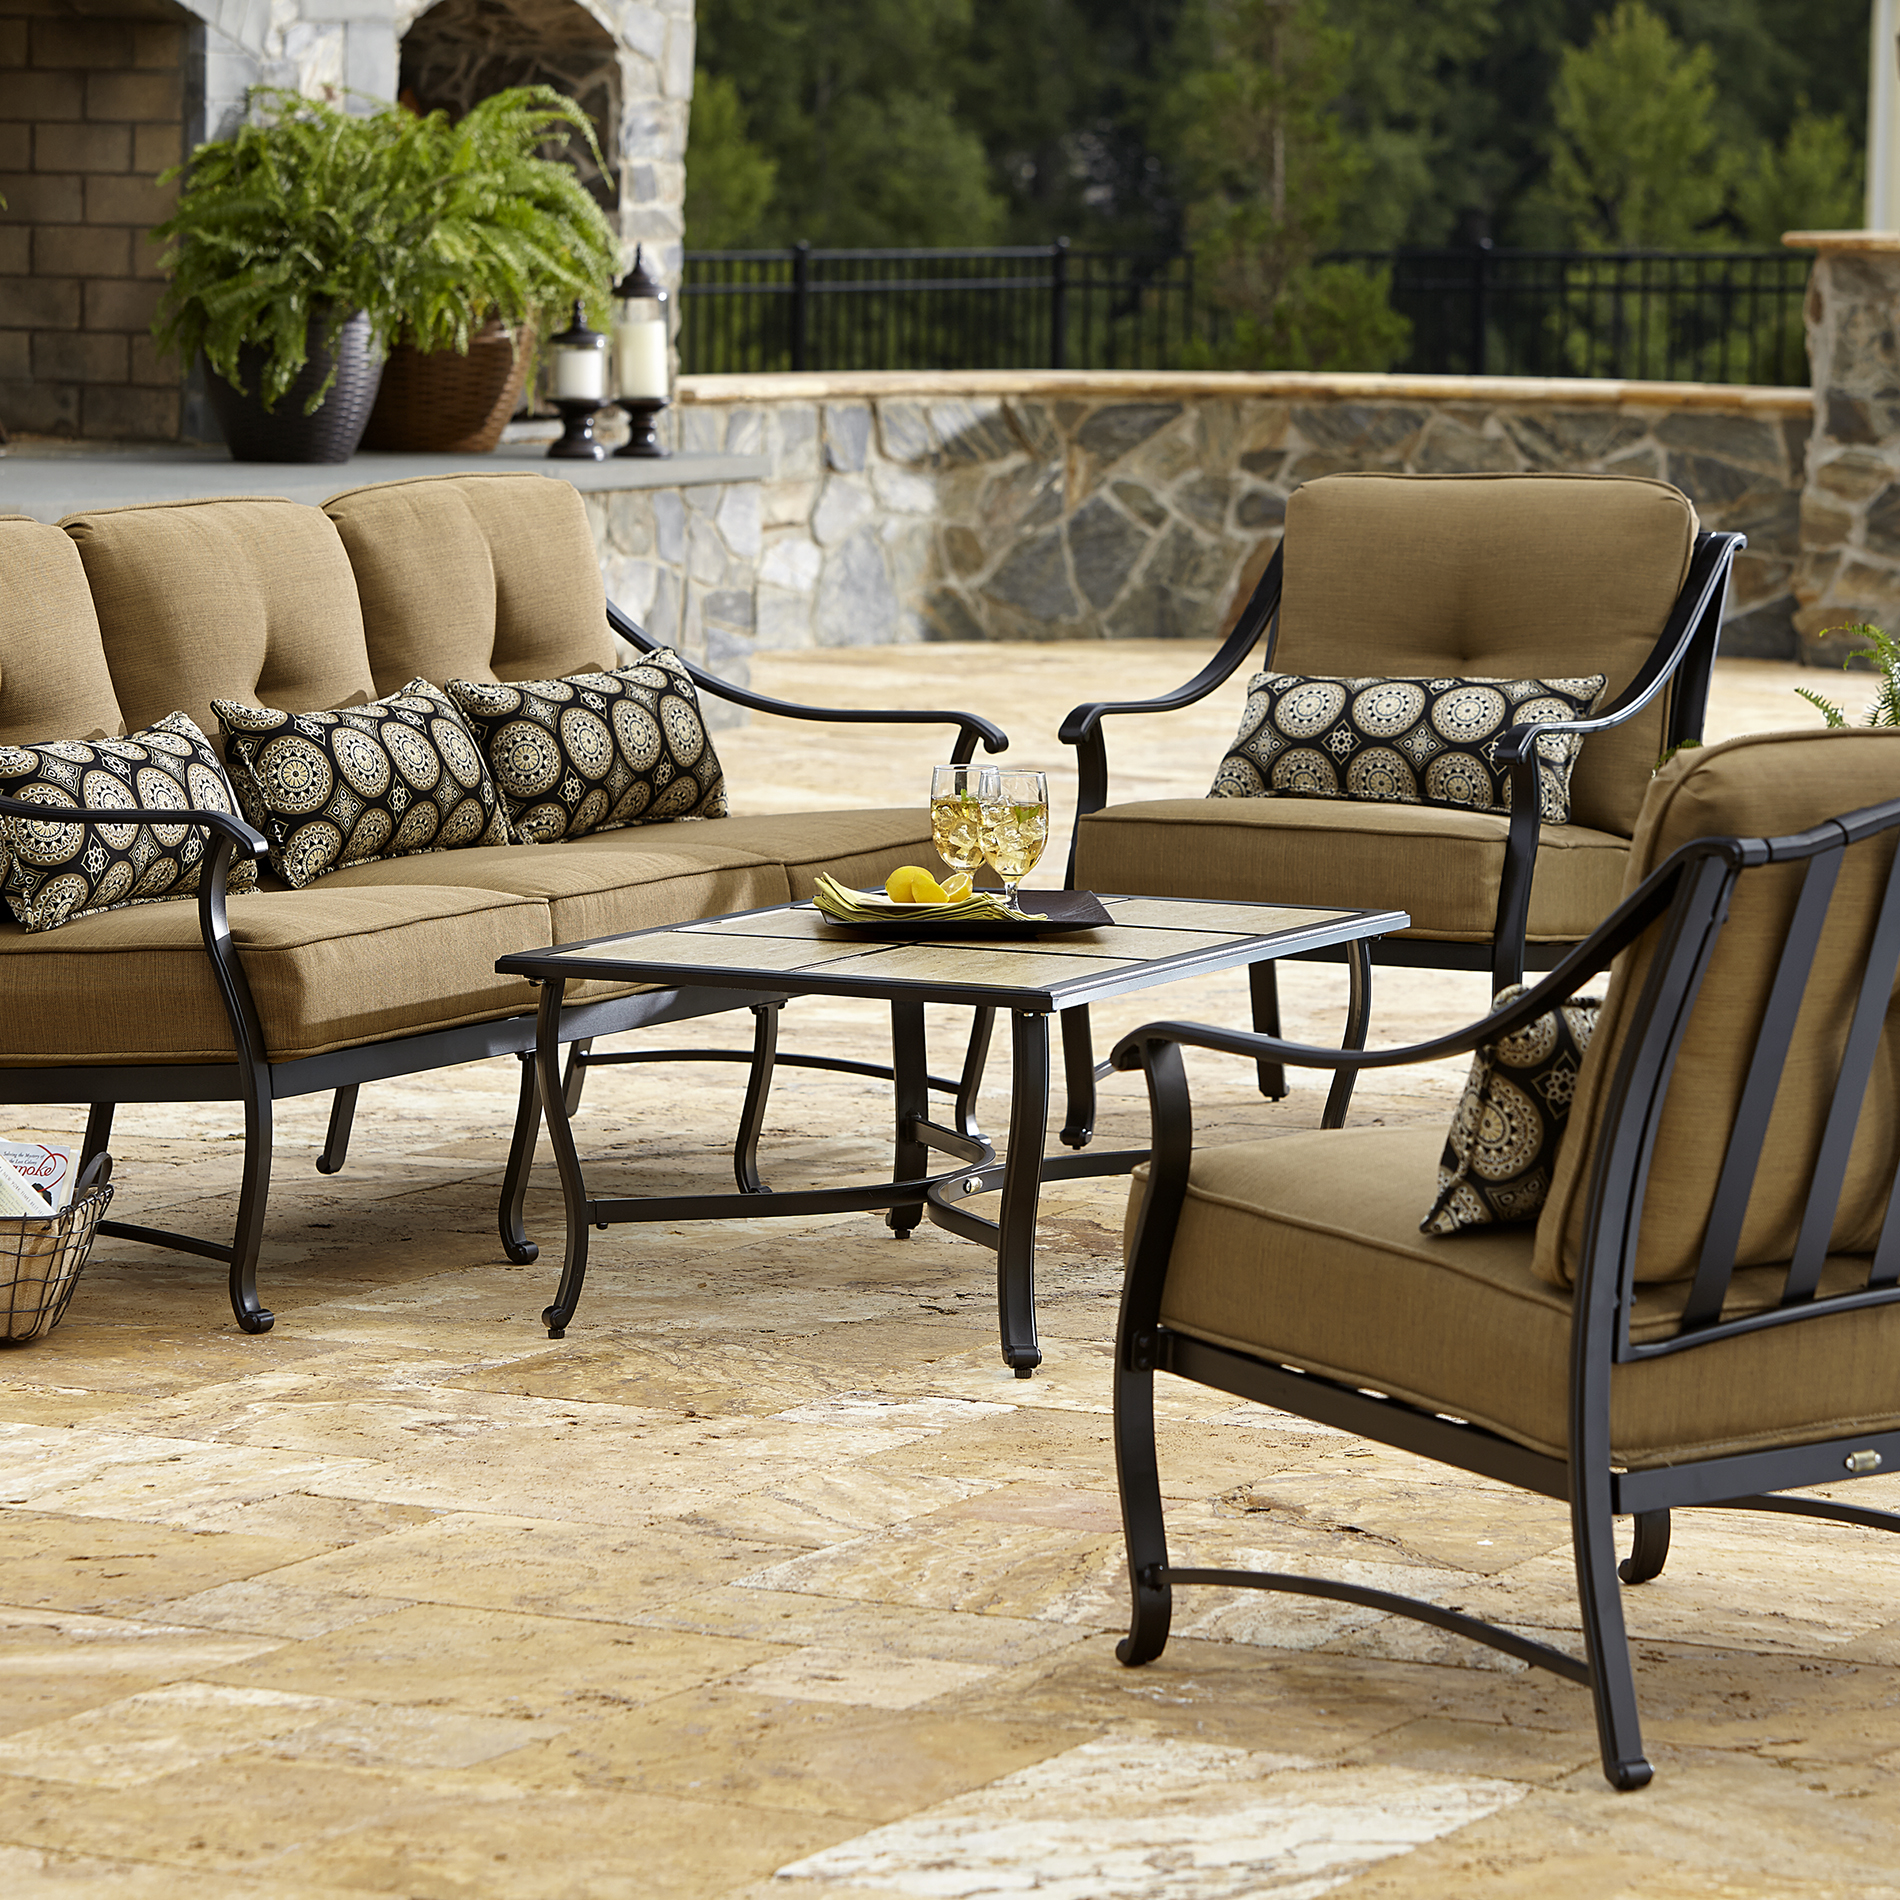 La-boy Outdoor Landon 4 Piece Seating Set